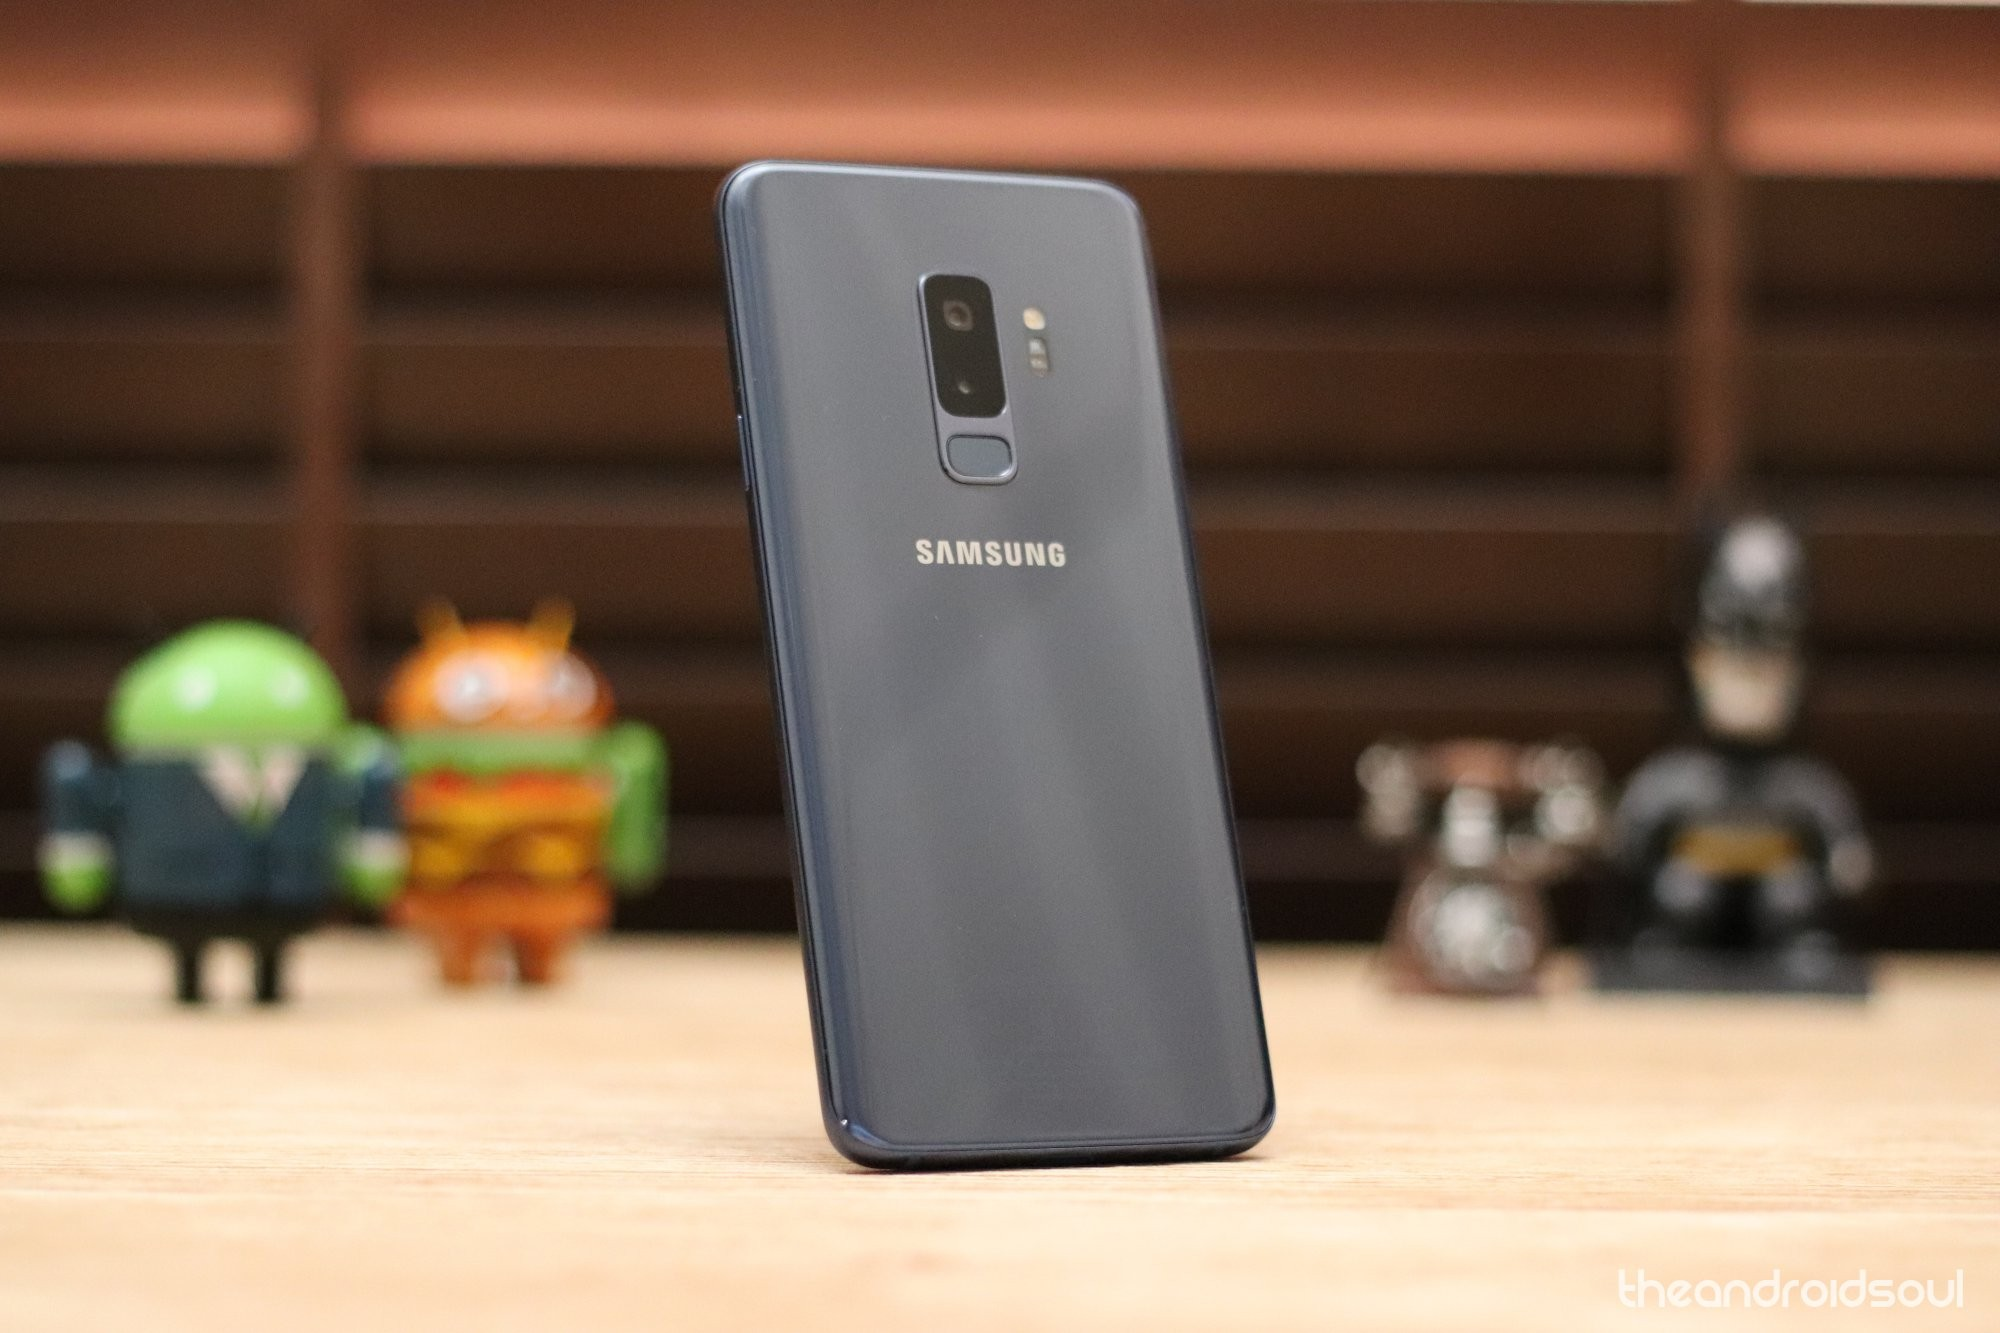 Galaxy S9 Android 9 ROM